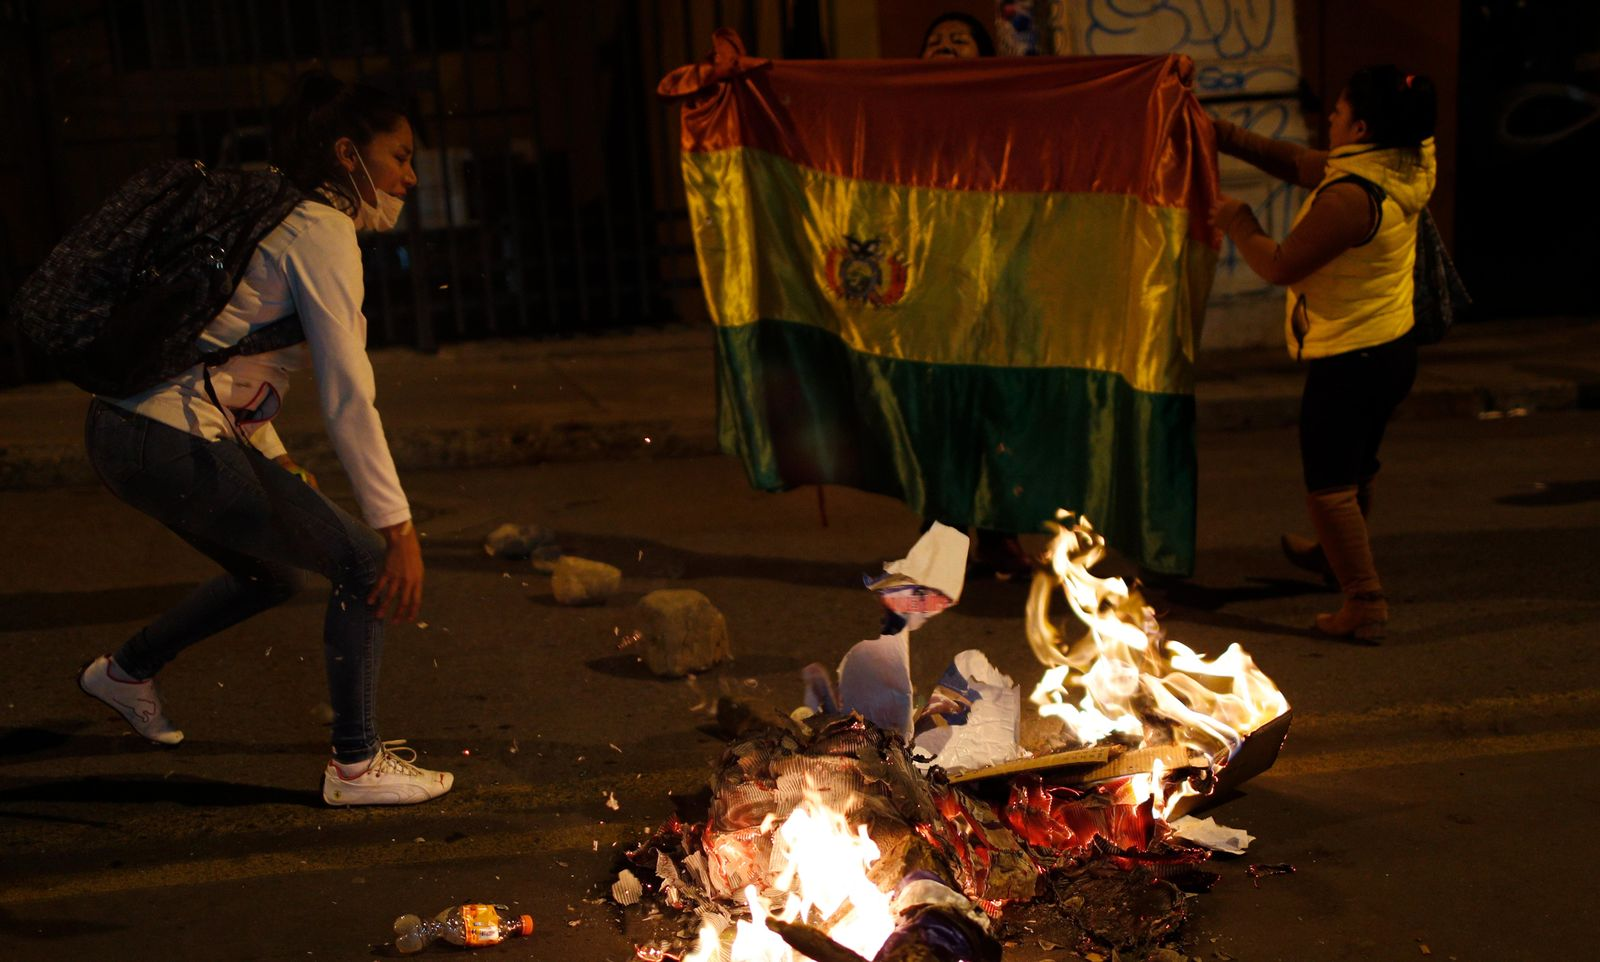 Supporters of opposition presidential candidate Carlos Mesa burn campaign posters of ruling party congressional candidates outside the Supreme Electoral Court where election ballots are being counted in La Paz, Bolivia, Monday, Oct. 21, 2019.{ } (AP Photo/Juan Karita)